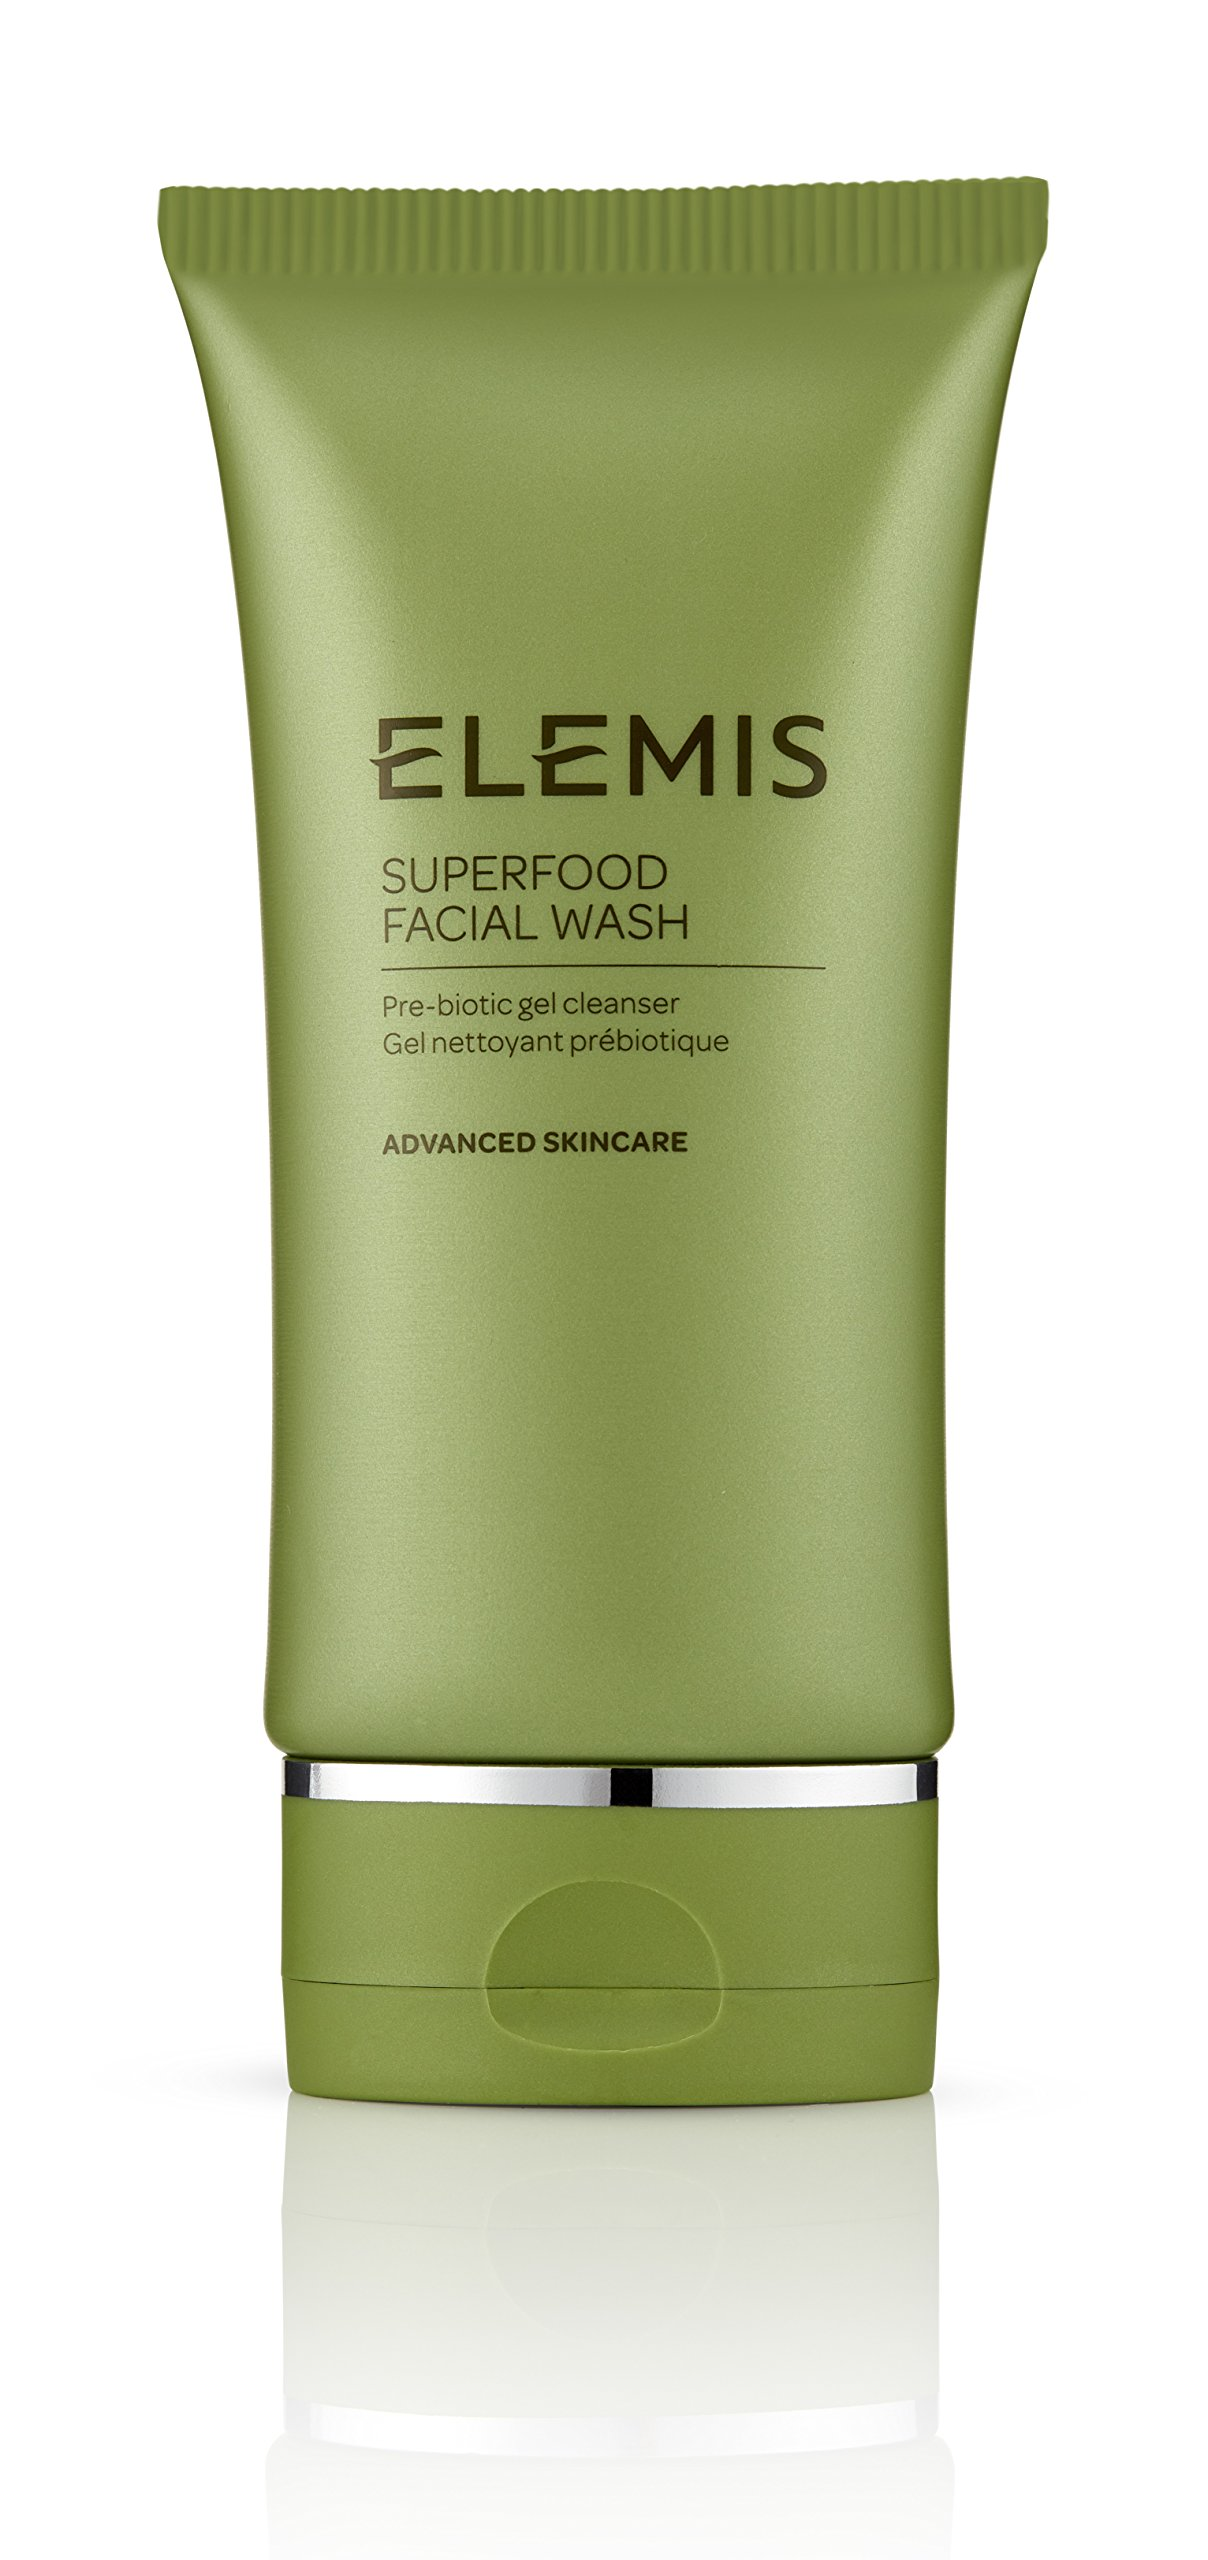 ELEMIS Superfood Facial Wash - Nourishing, Nutrient-dense Gel Cleanser, 5 fl. oz. by ELEMIS